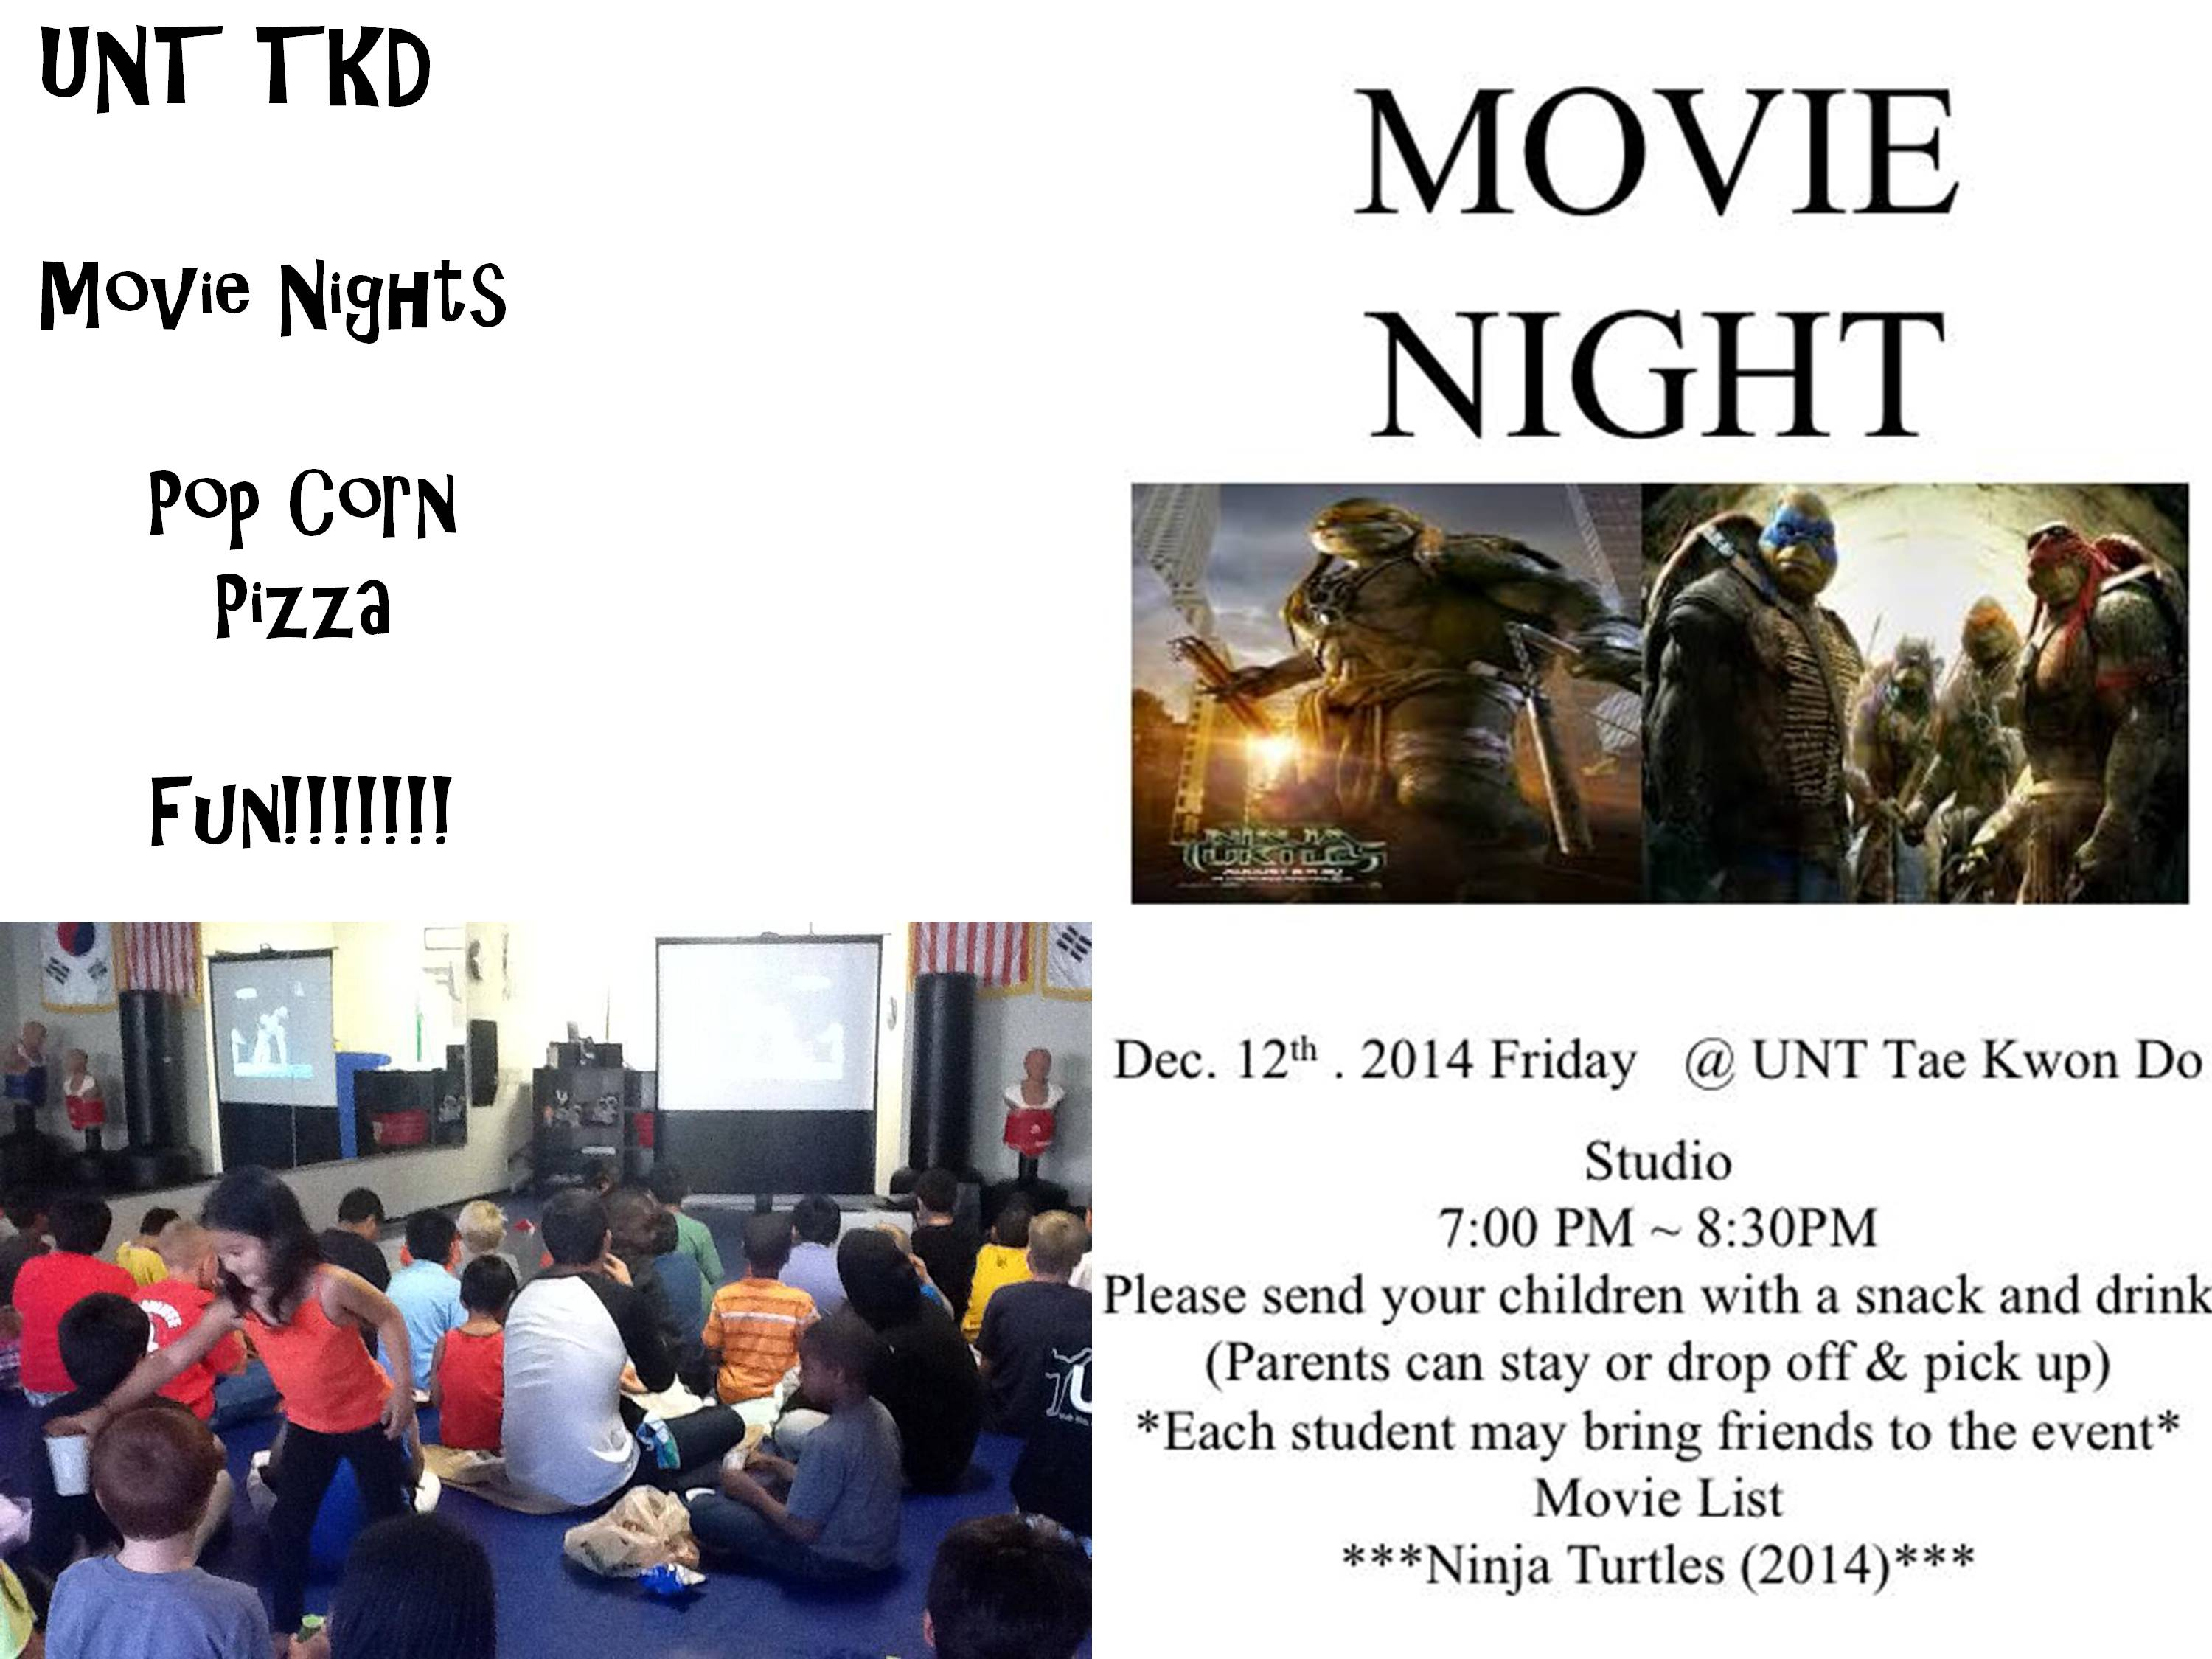 Movie Nights - on Special Fridays